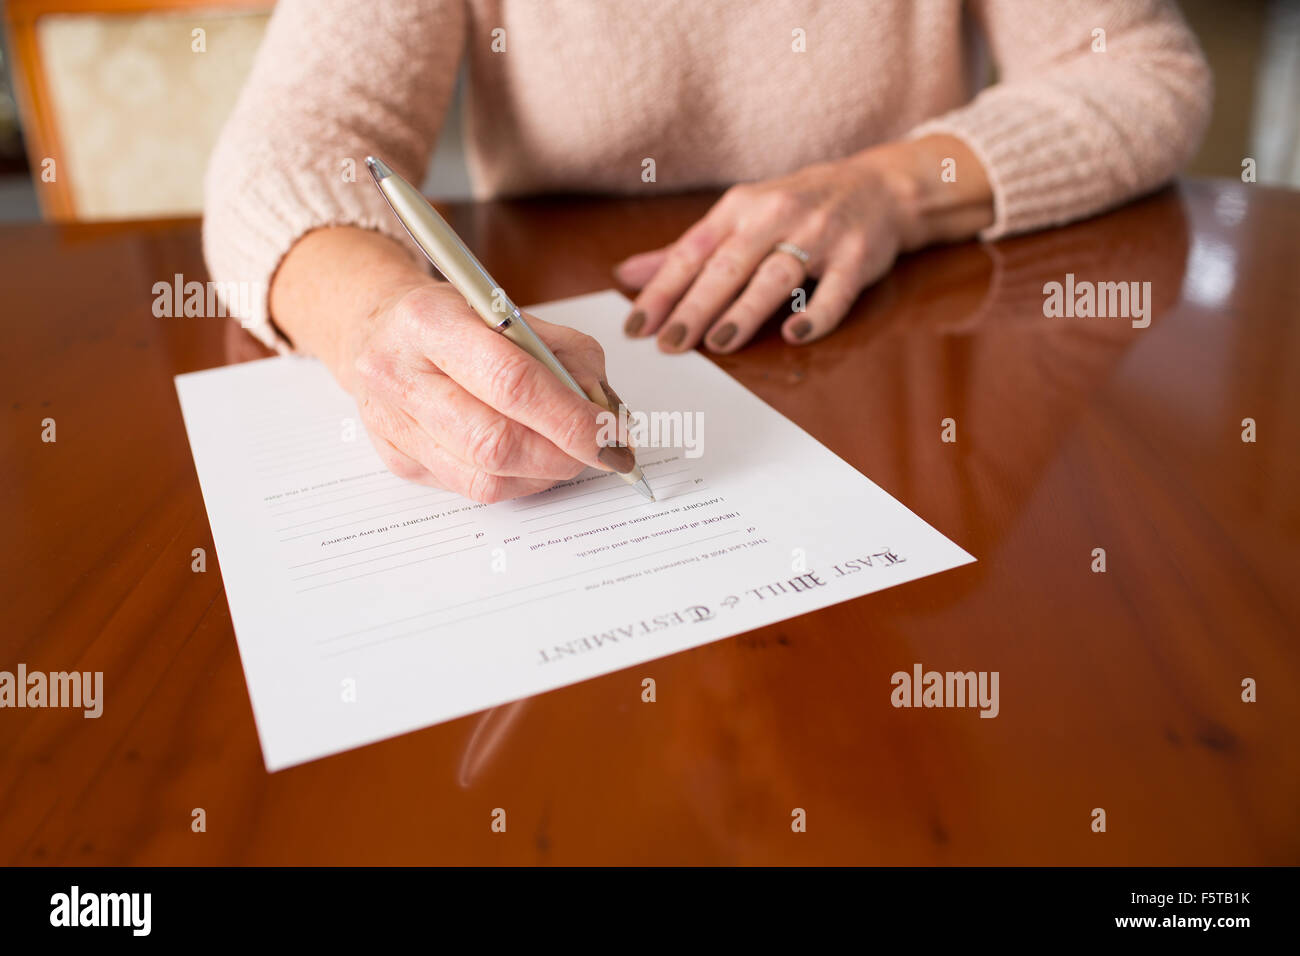 Senior Woman Signing Last Will And Testament At Home - Stock Image